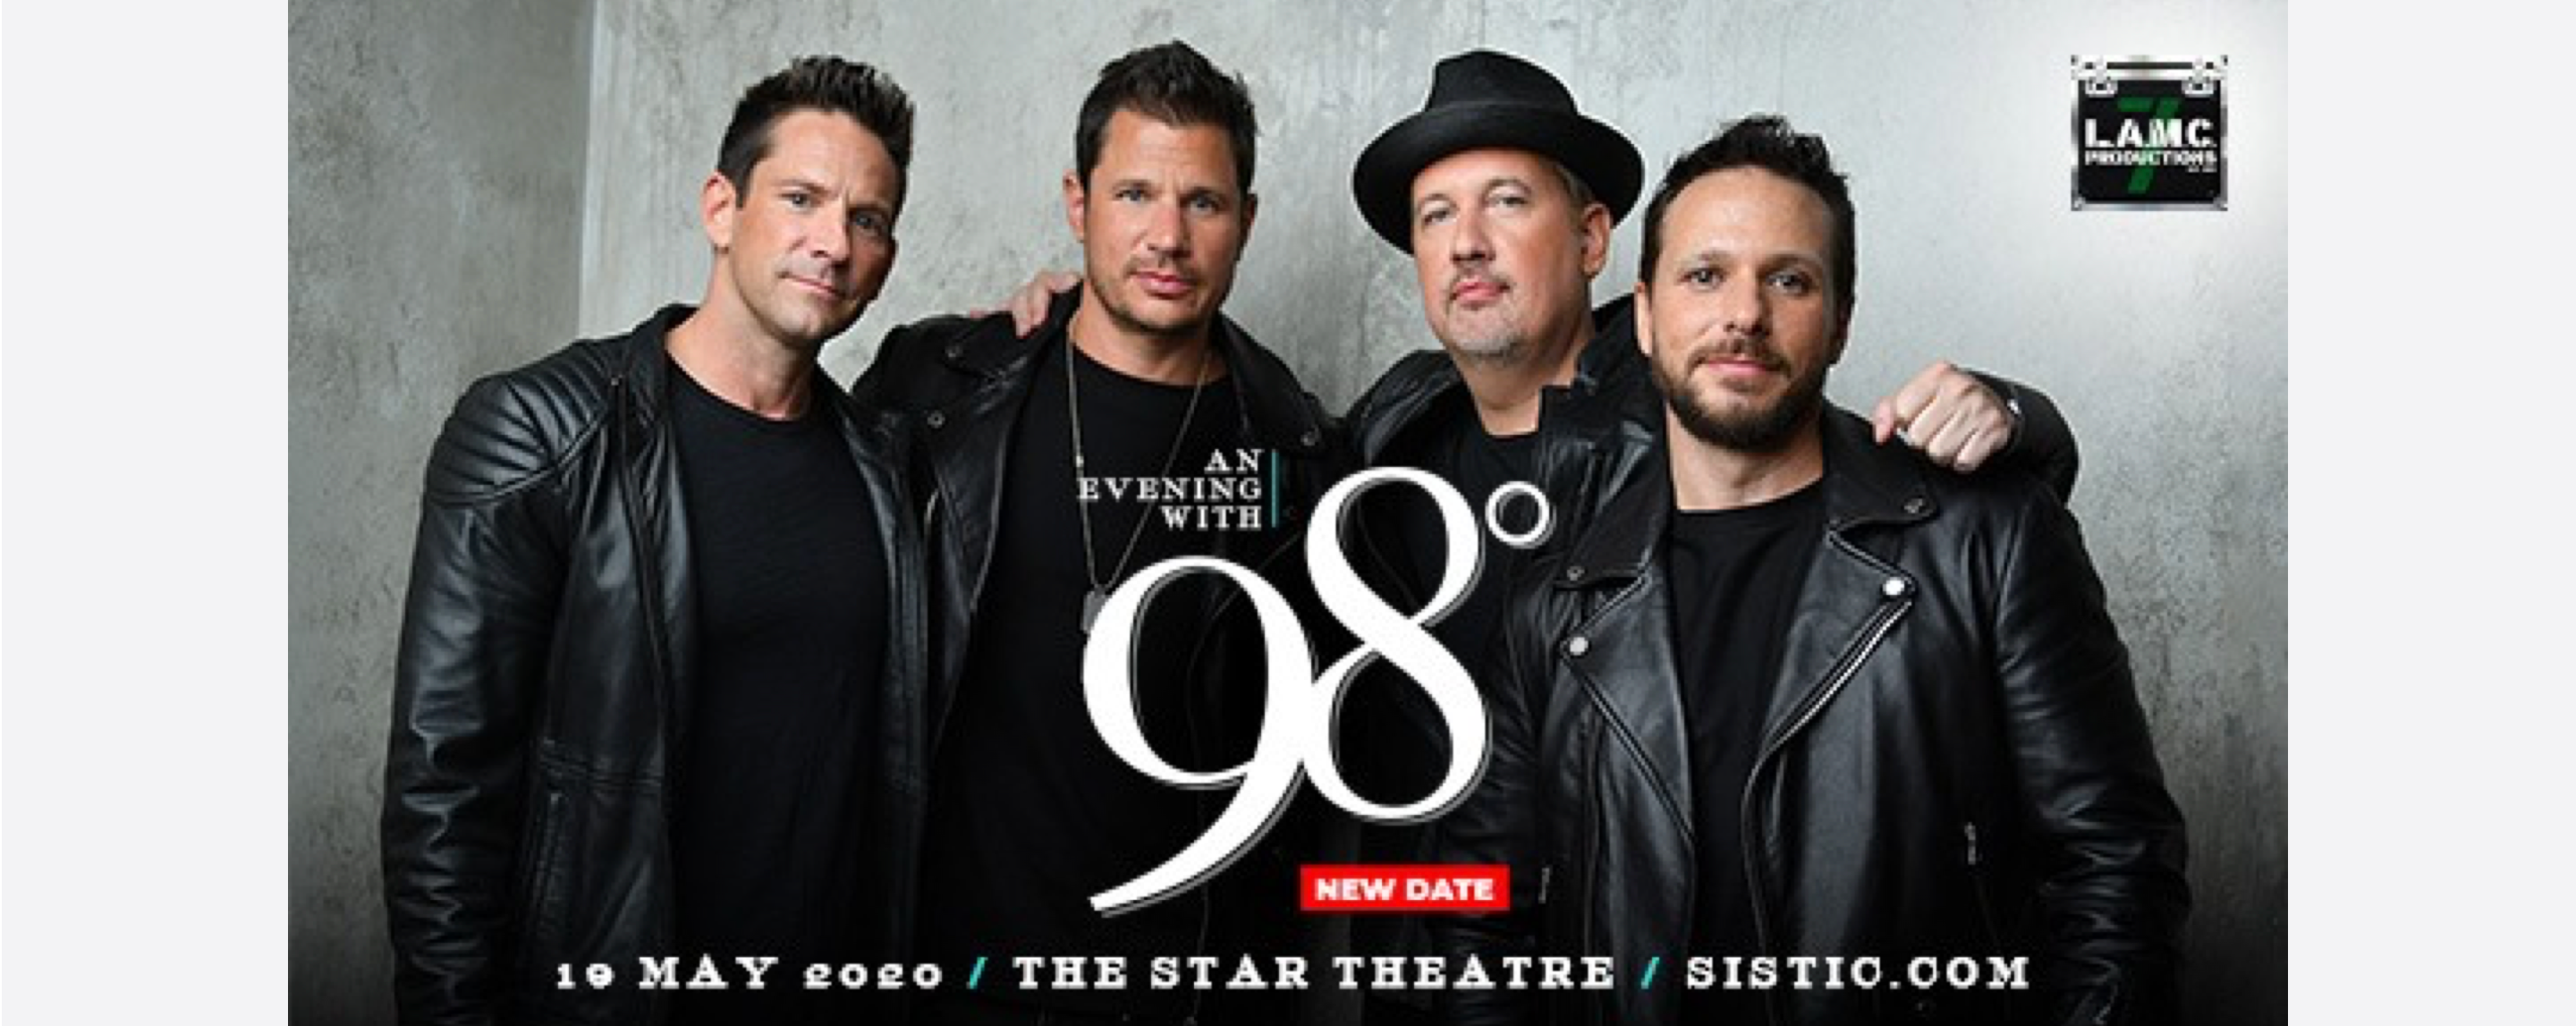 An Evening with 98° - Live in Singapore